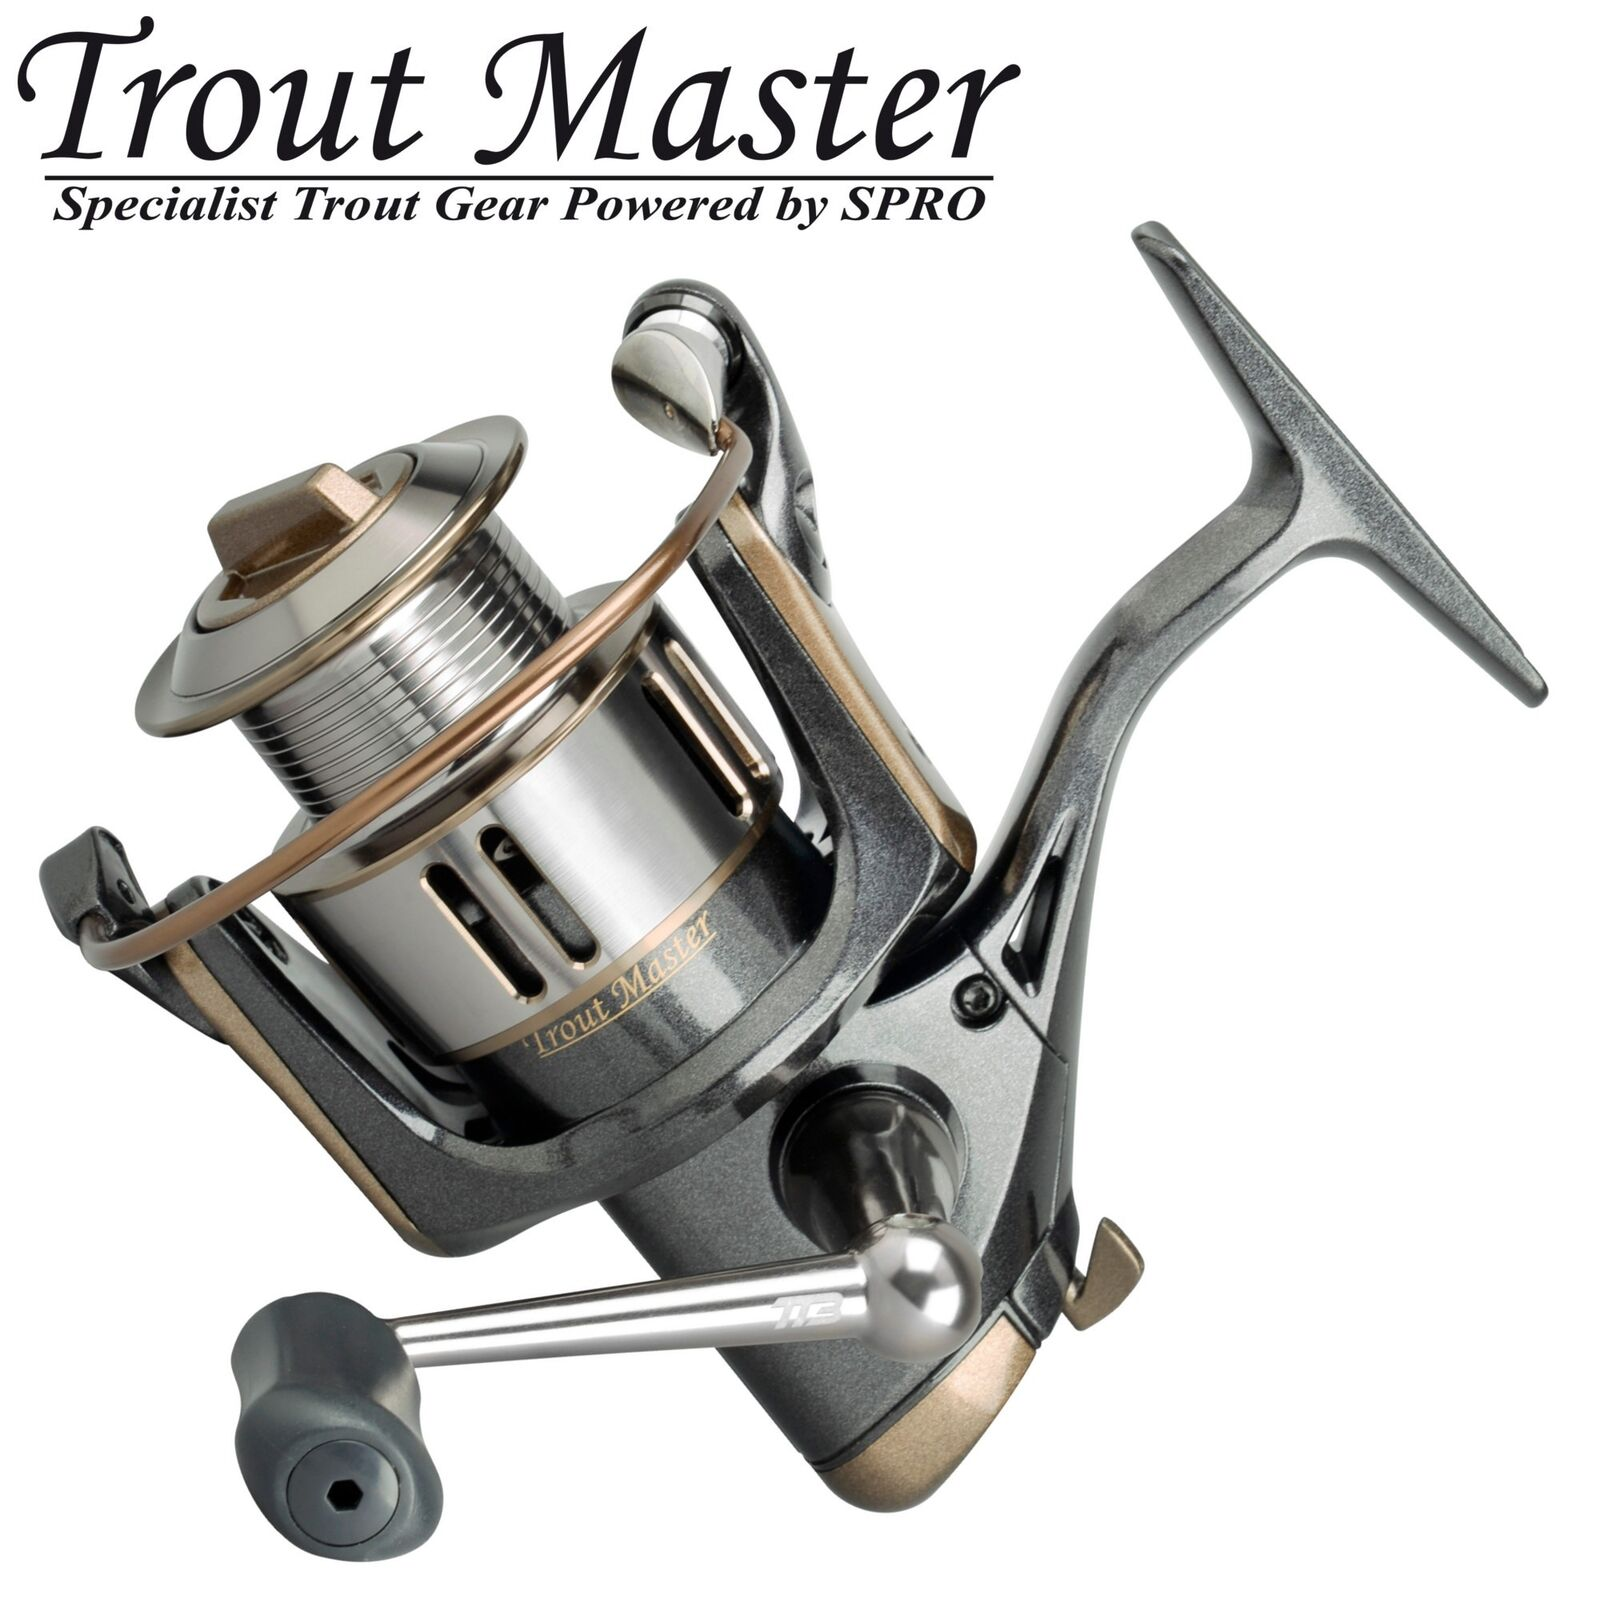 Trout Master Tactical Trout - 3 - Trout Stationärrolle zum Forellenangeln, Forellenrolle 0fc948